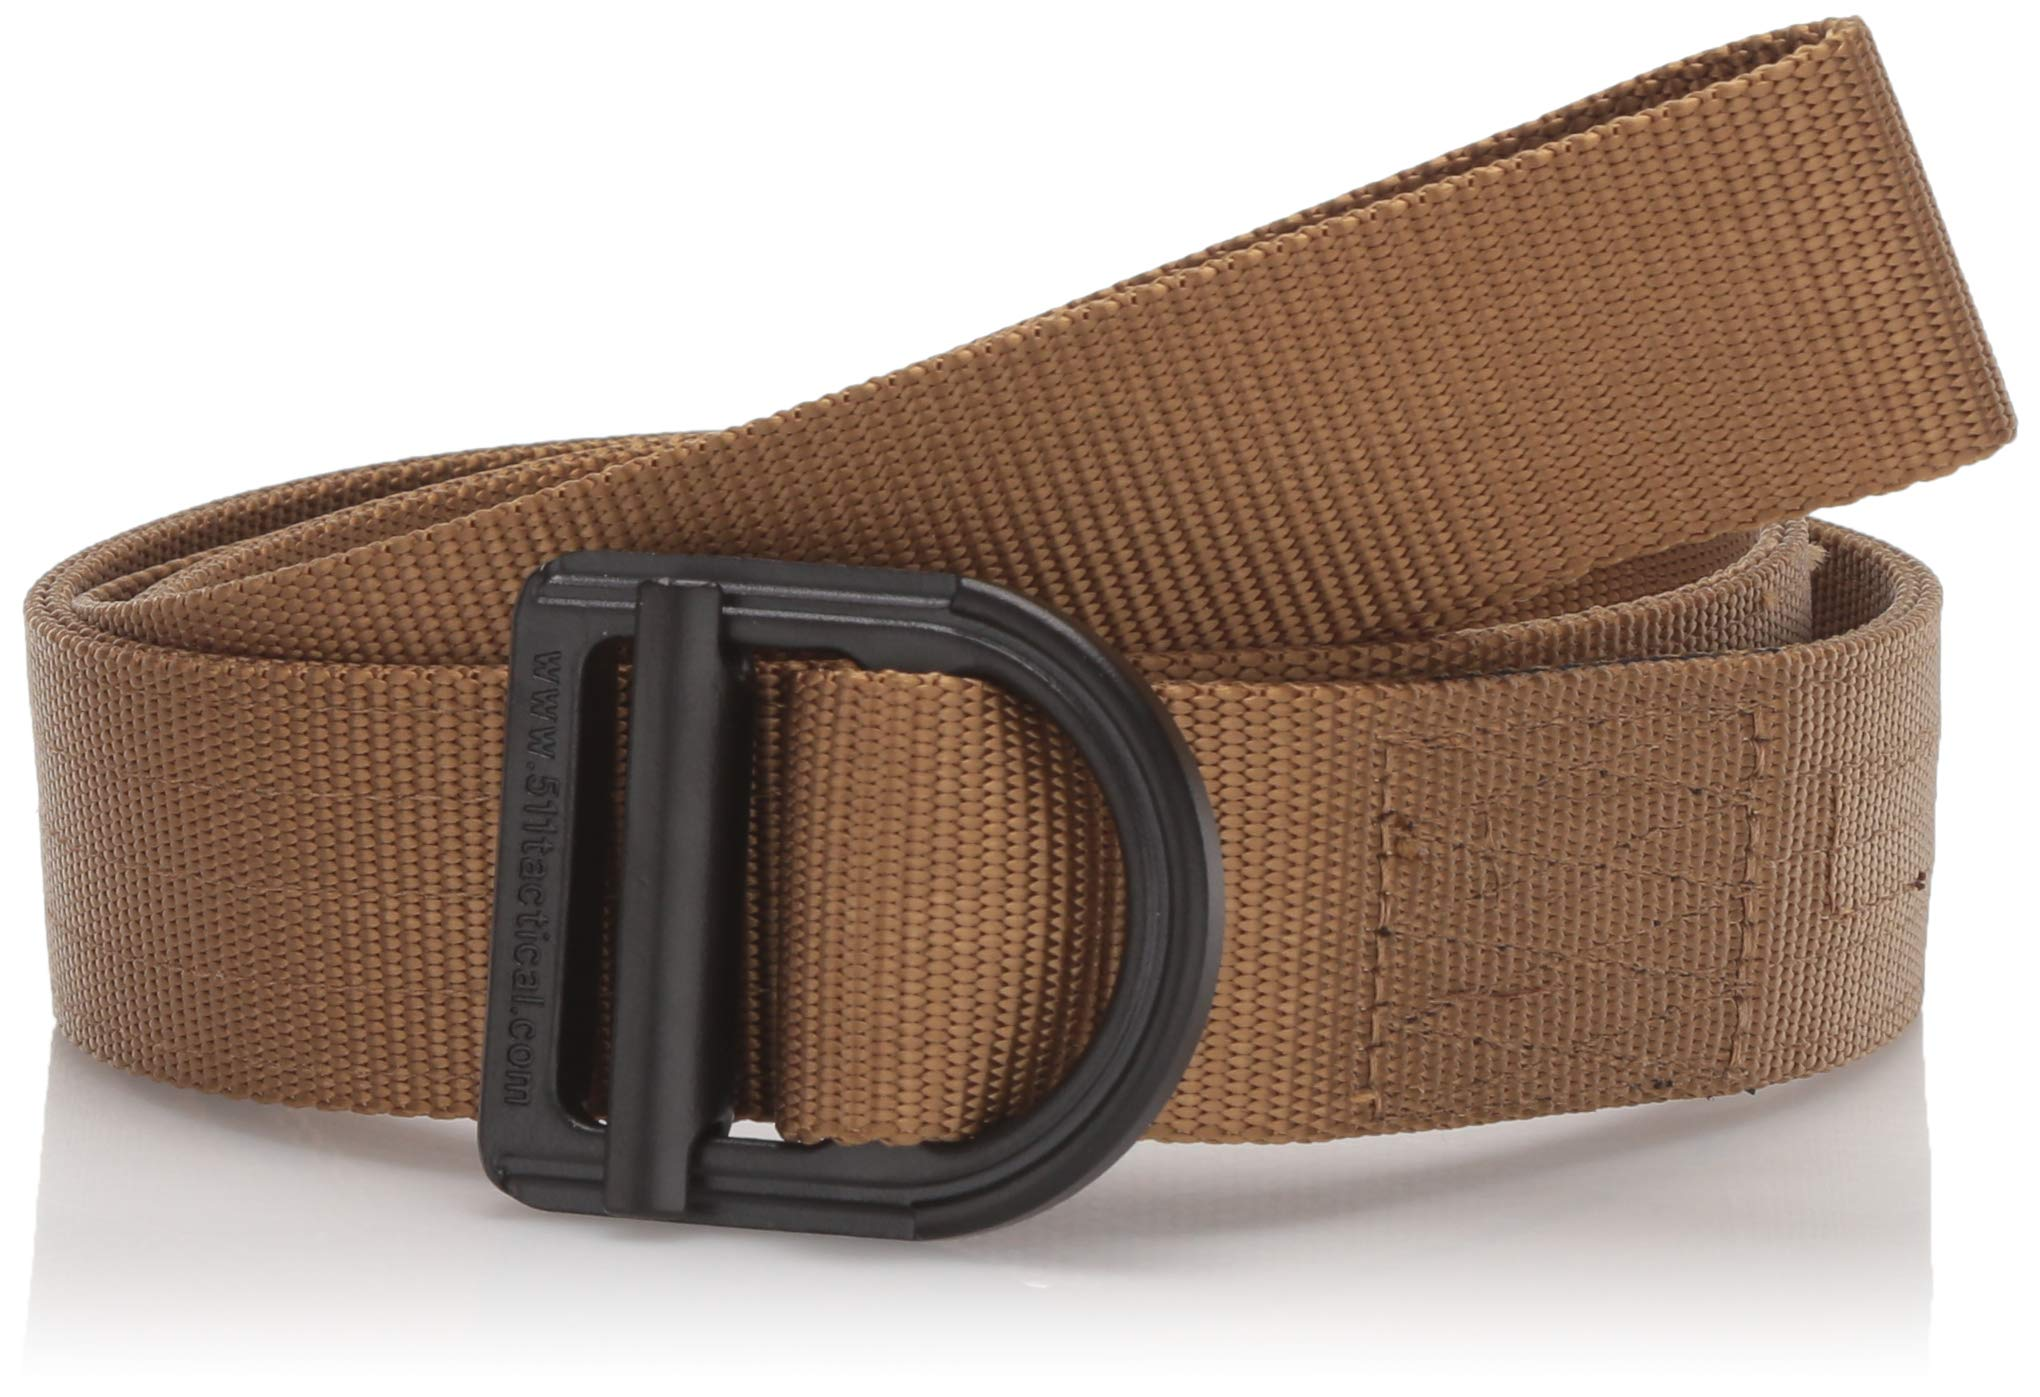 5.11  Trainer 1.5'' Tactical Belt, Heavy Duty for Military and Law Enforcement, Style 59409, Coyote (120), 4XL by 5.11